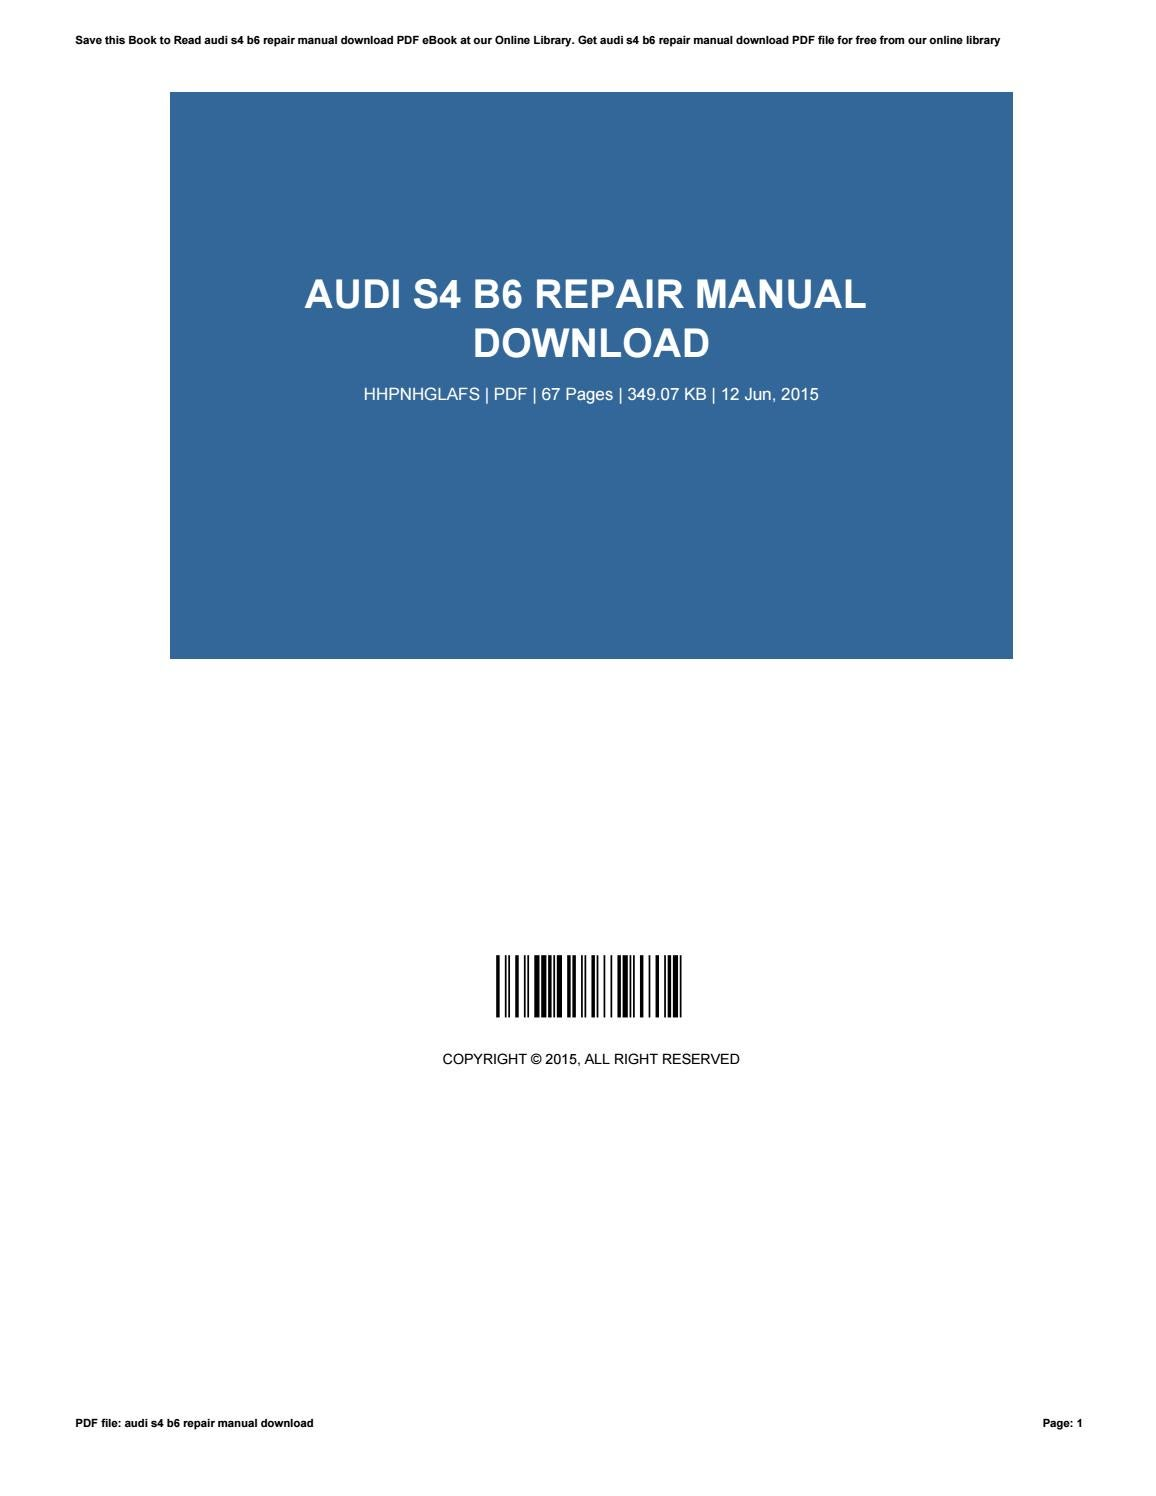 manual for an arcoaire air conditioner ebook